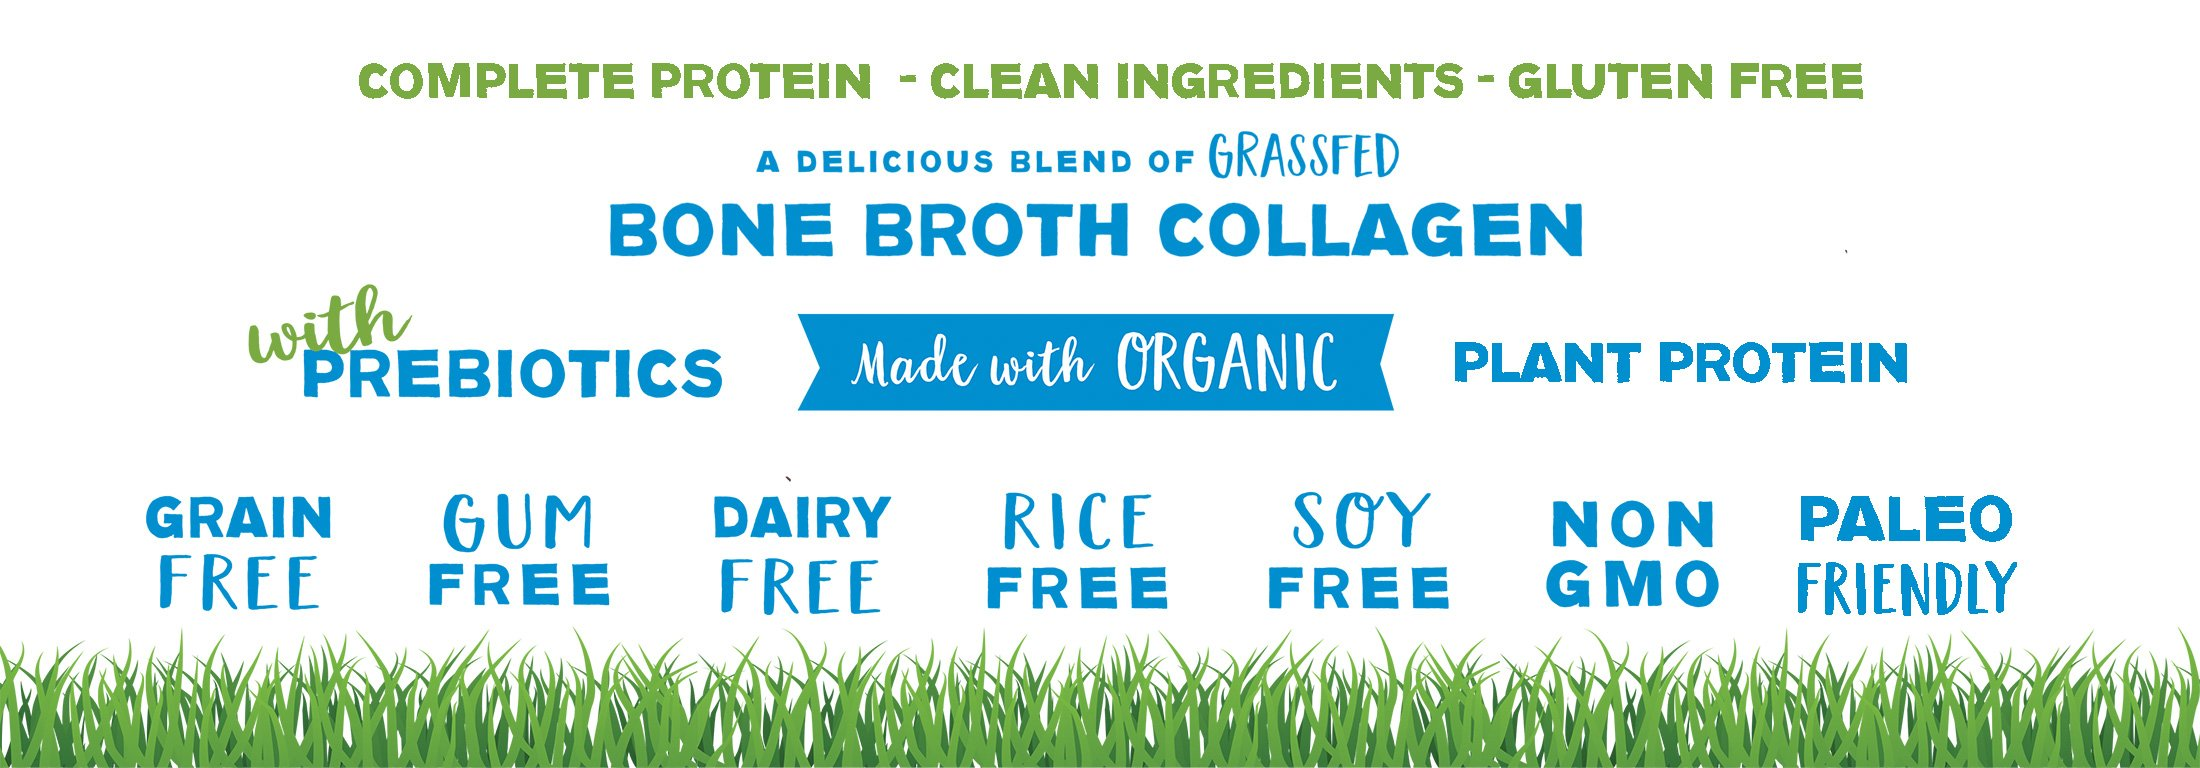 GracieBloo Bone Broth Collagen Features